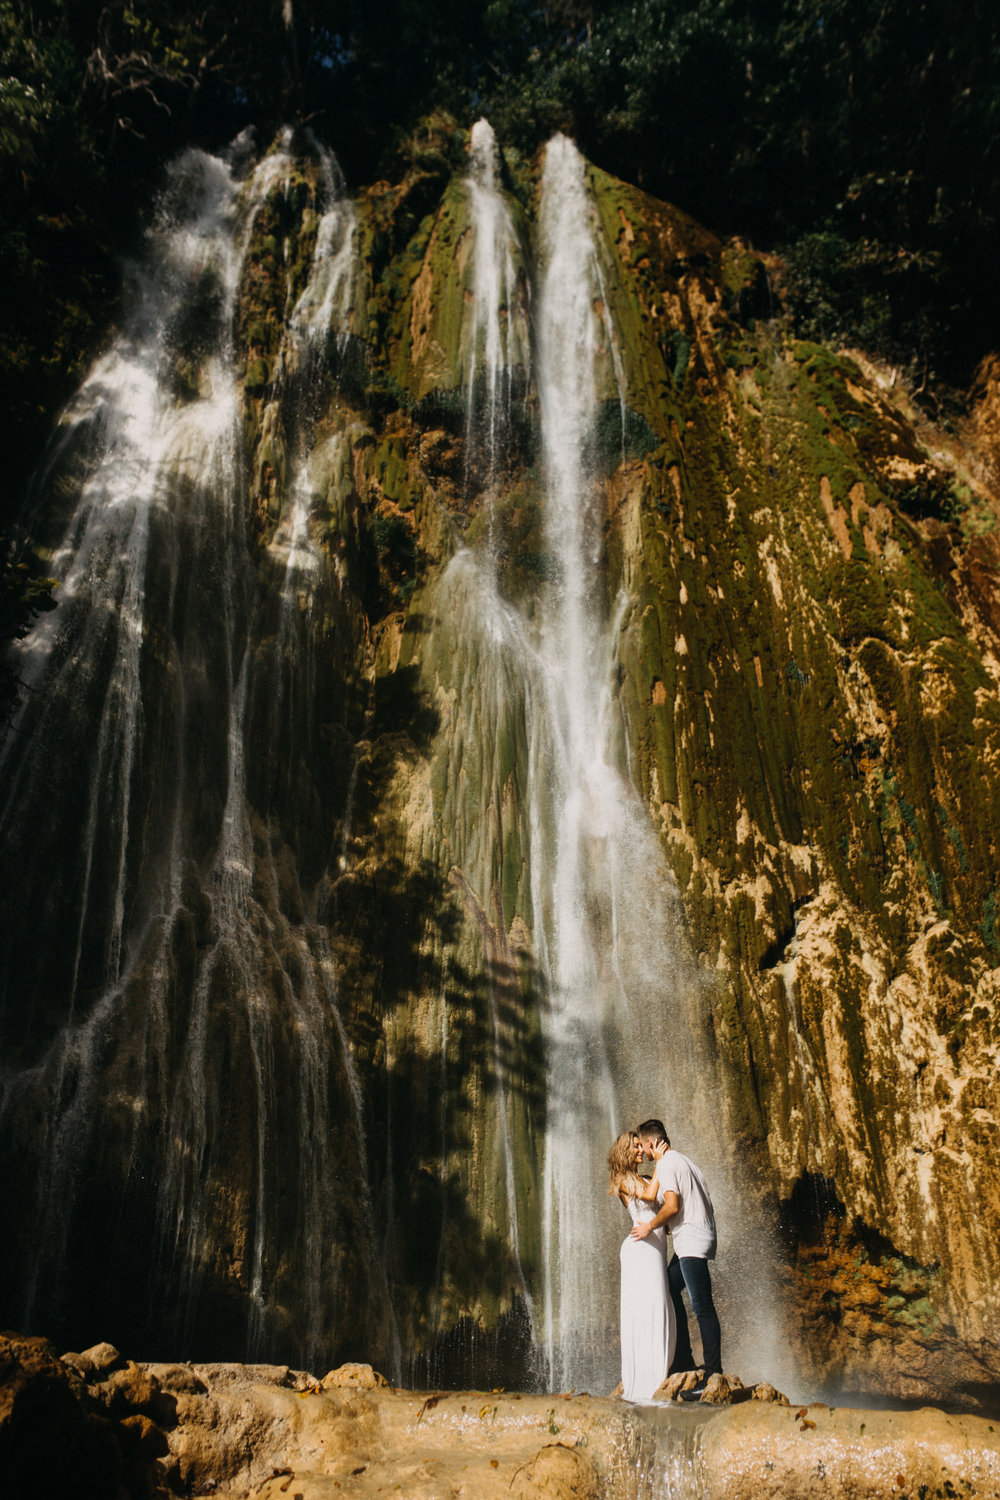 samana dominican republic waterfall photo